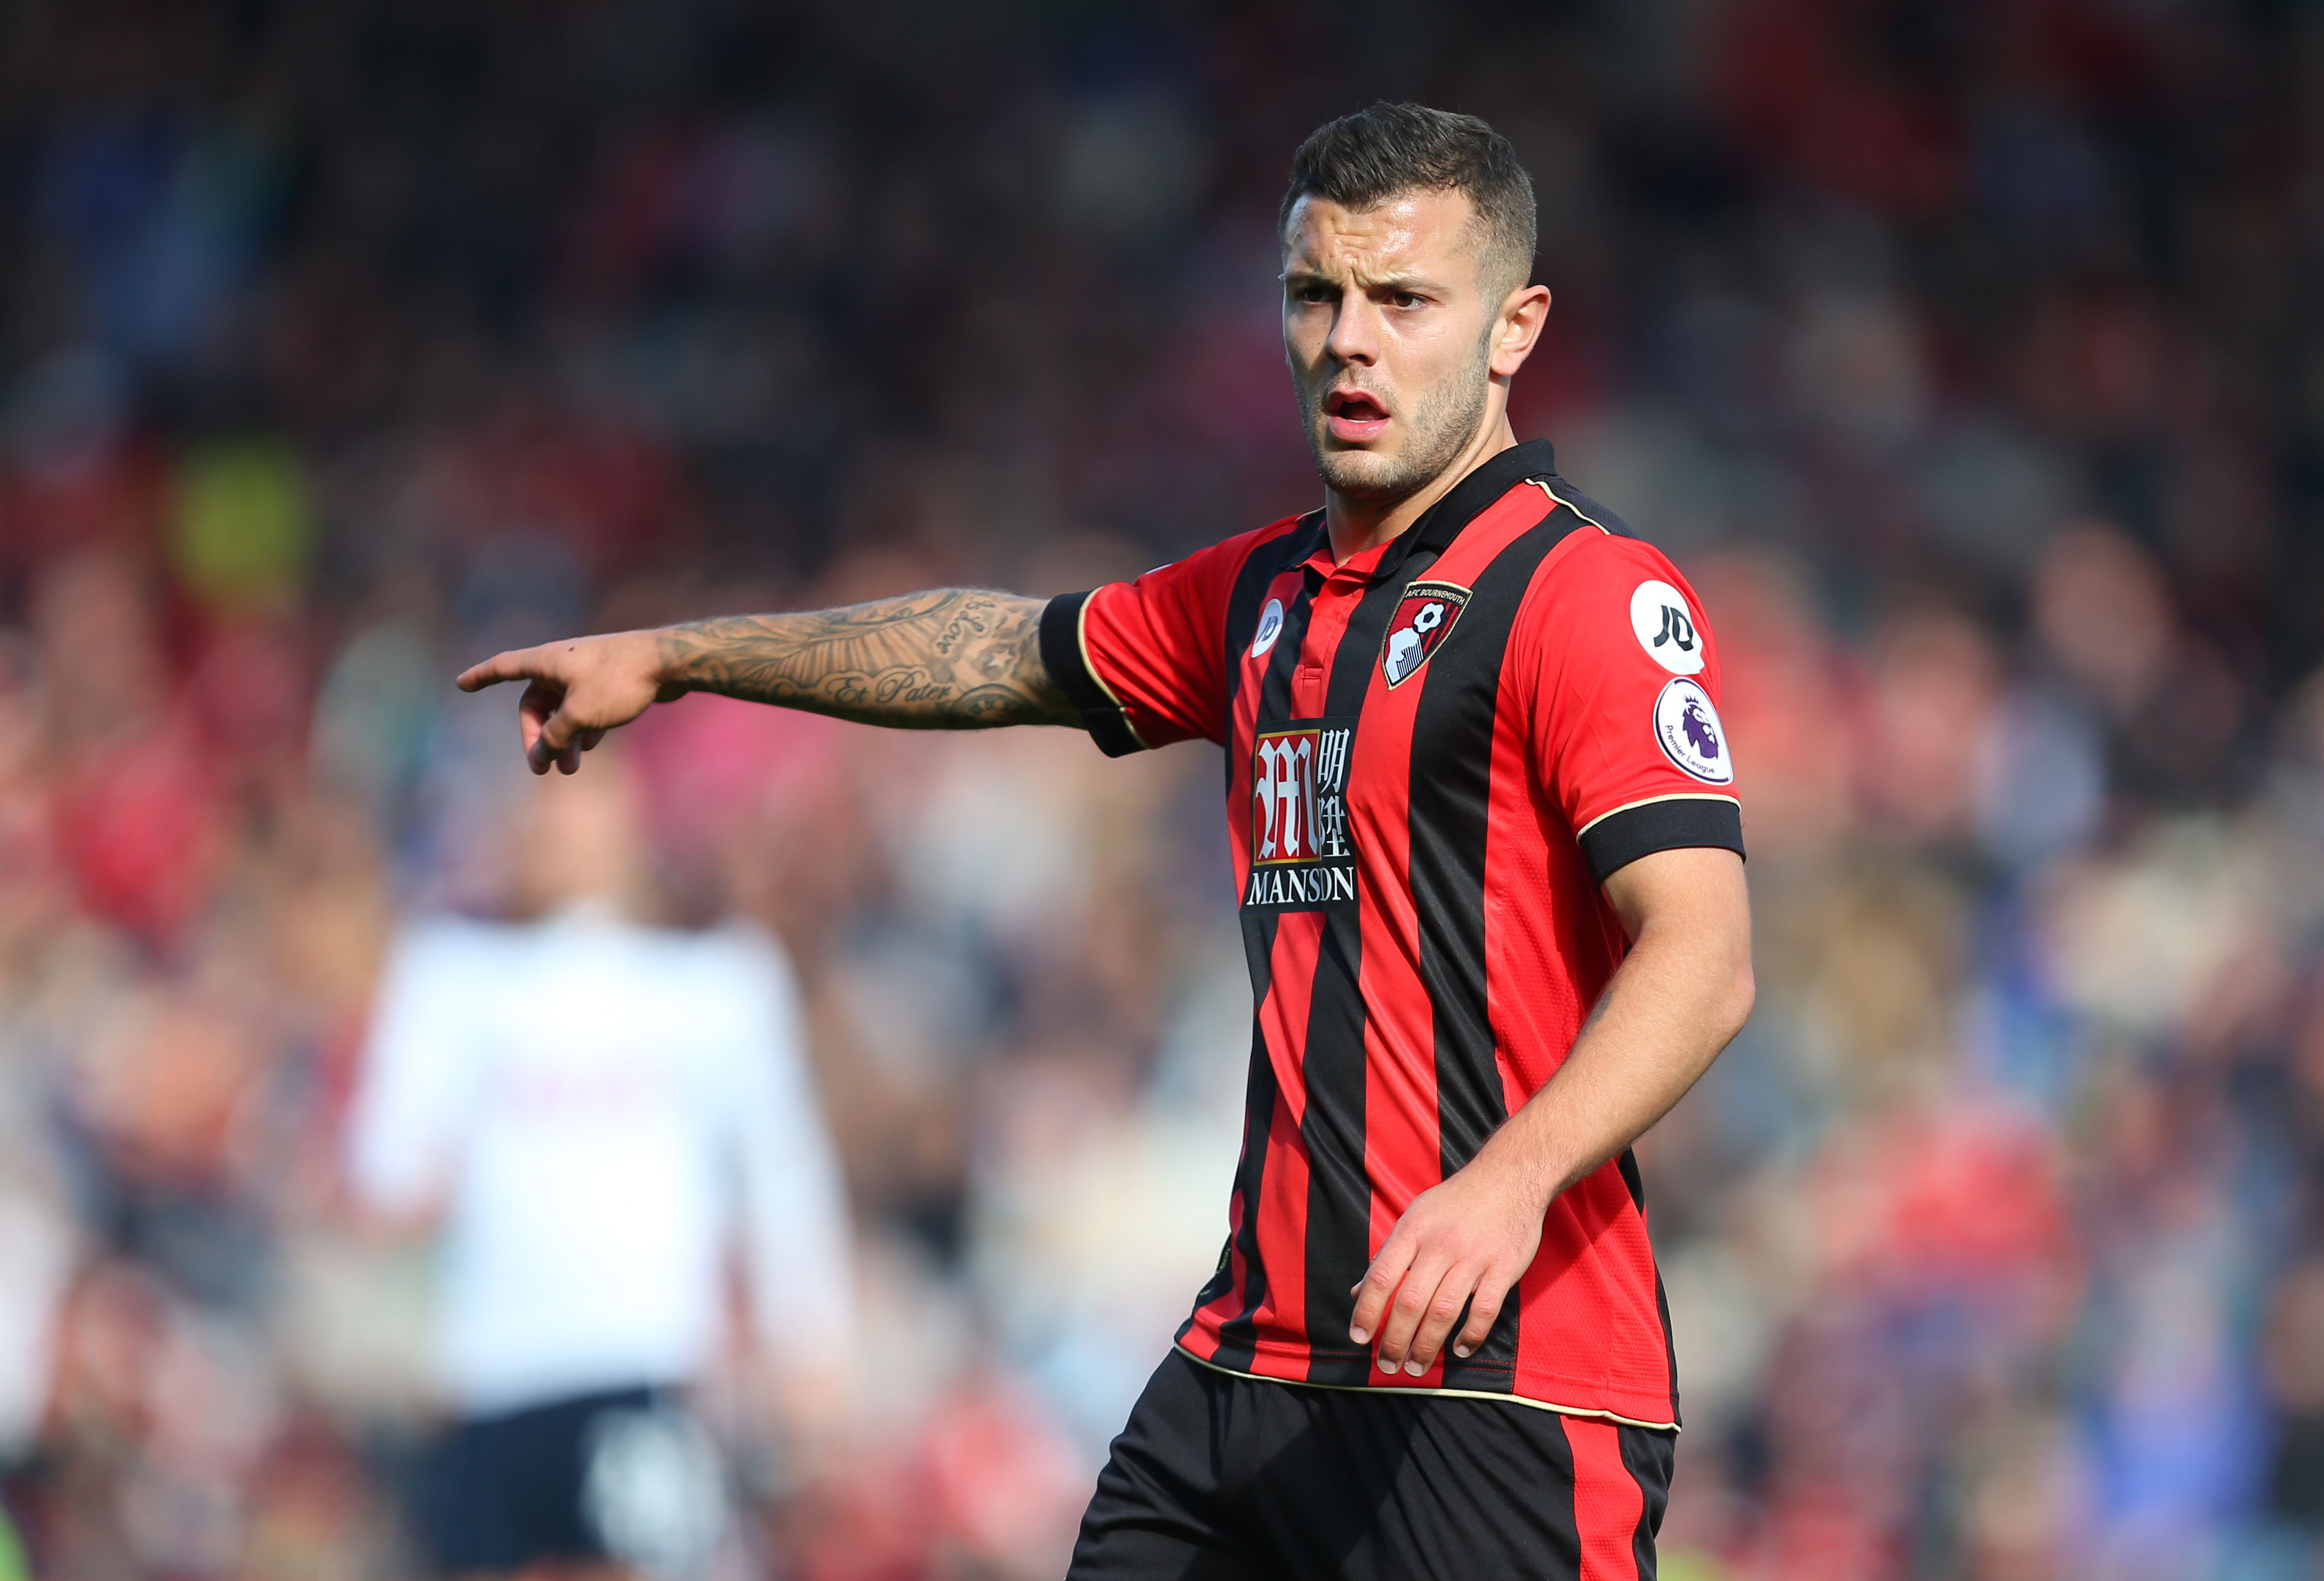 Jake Wilshere reveals why he had to leave Arsenal